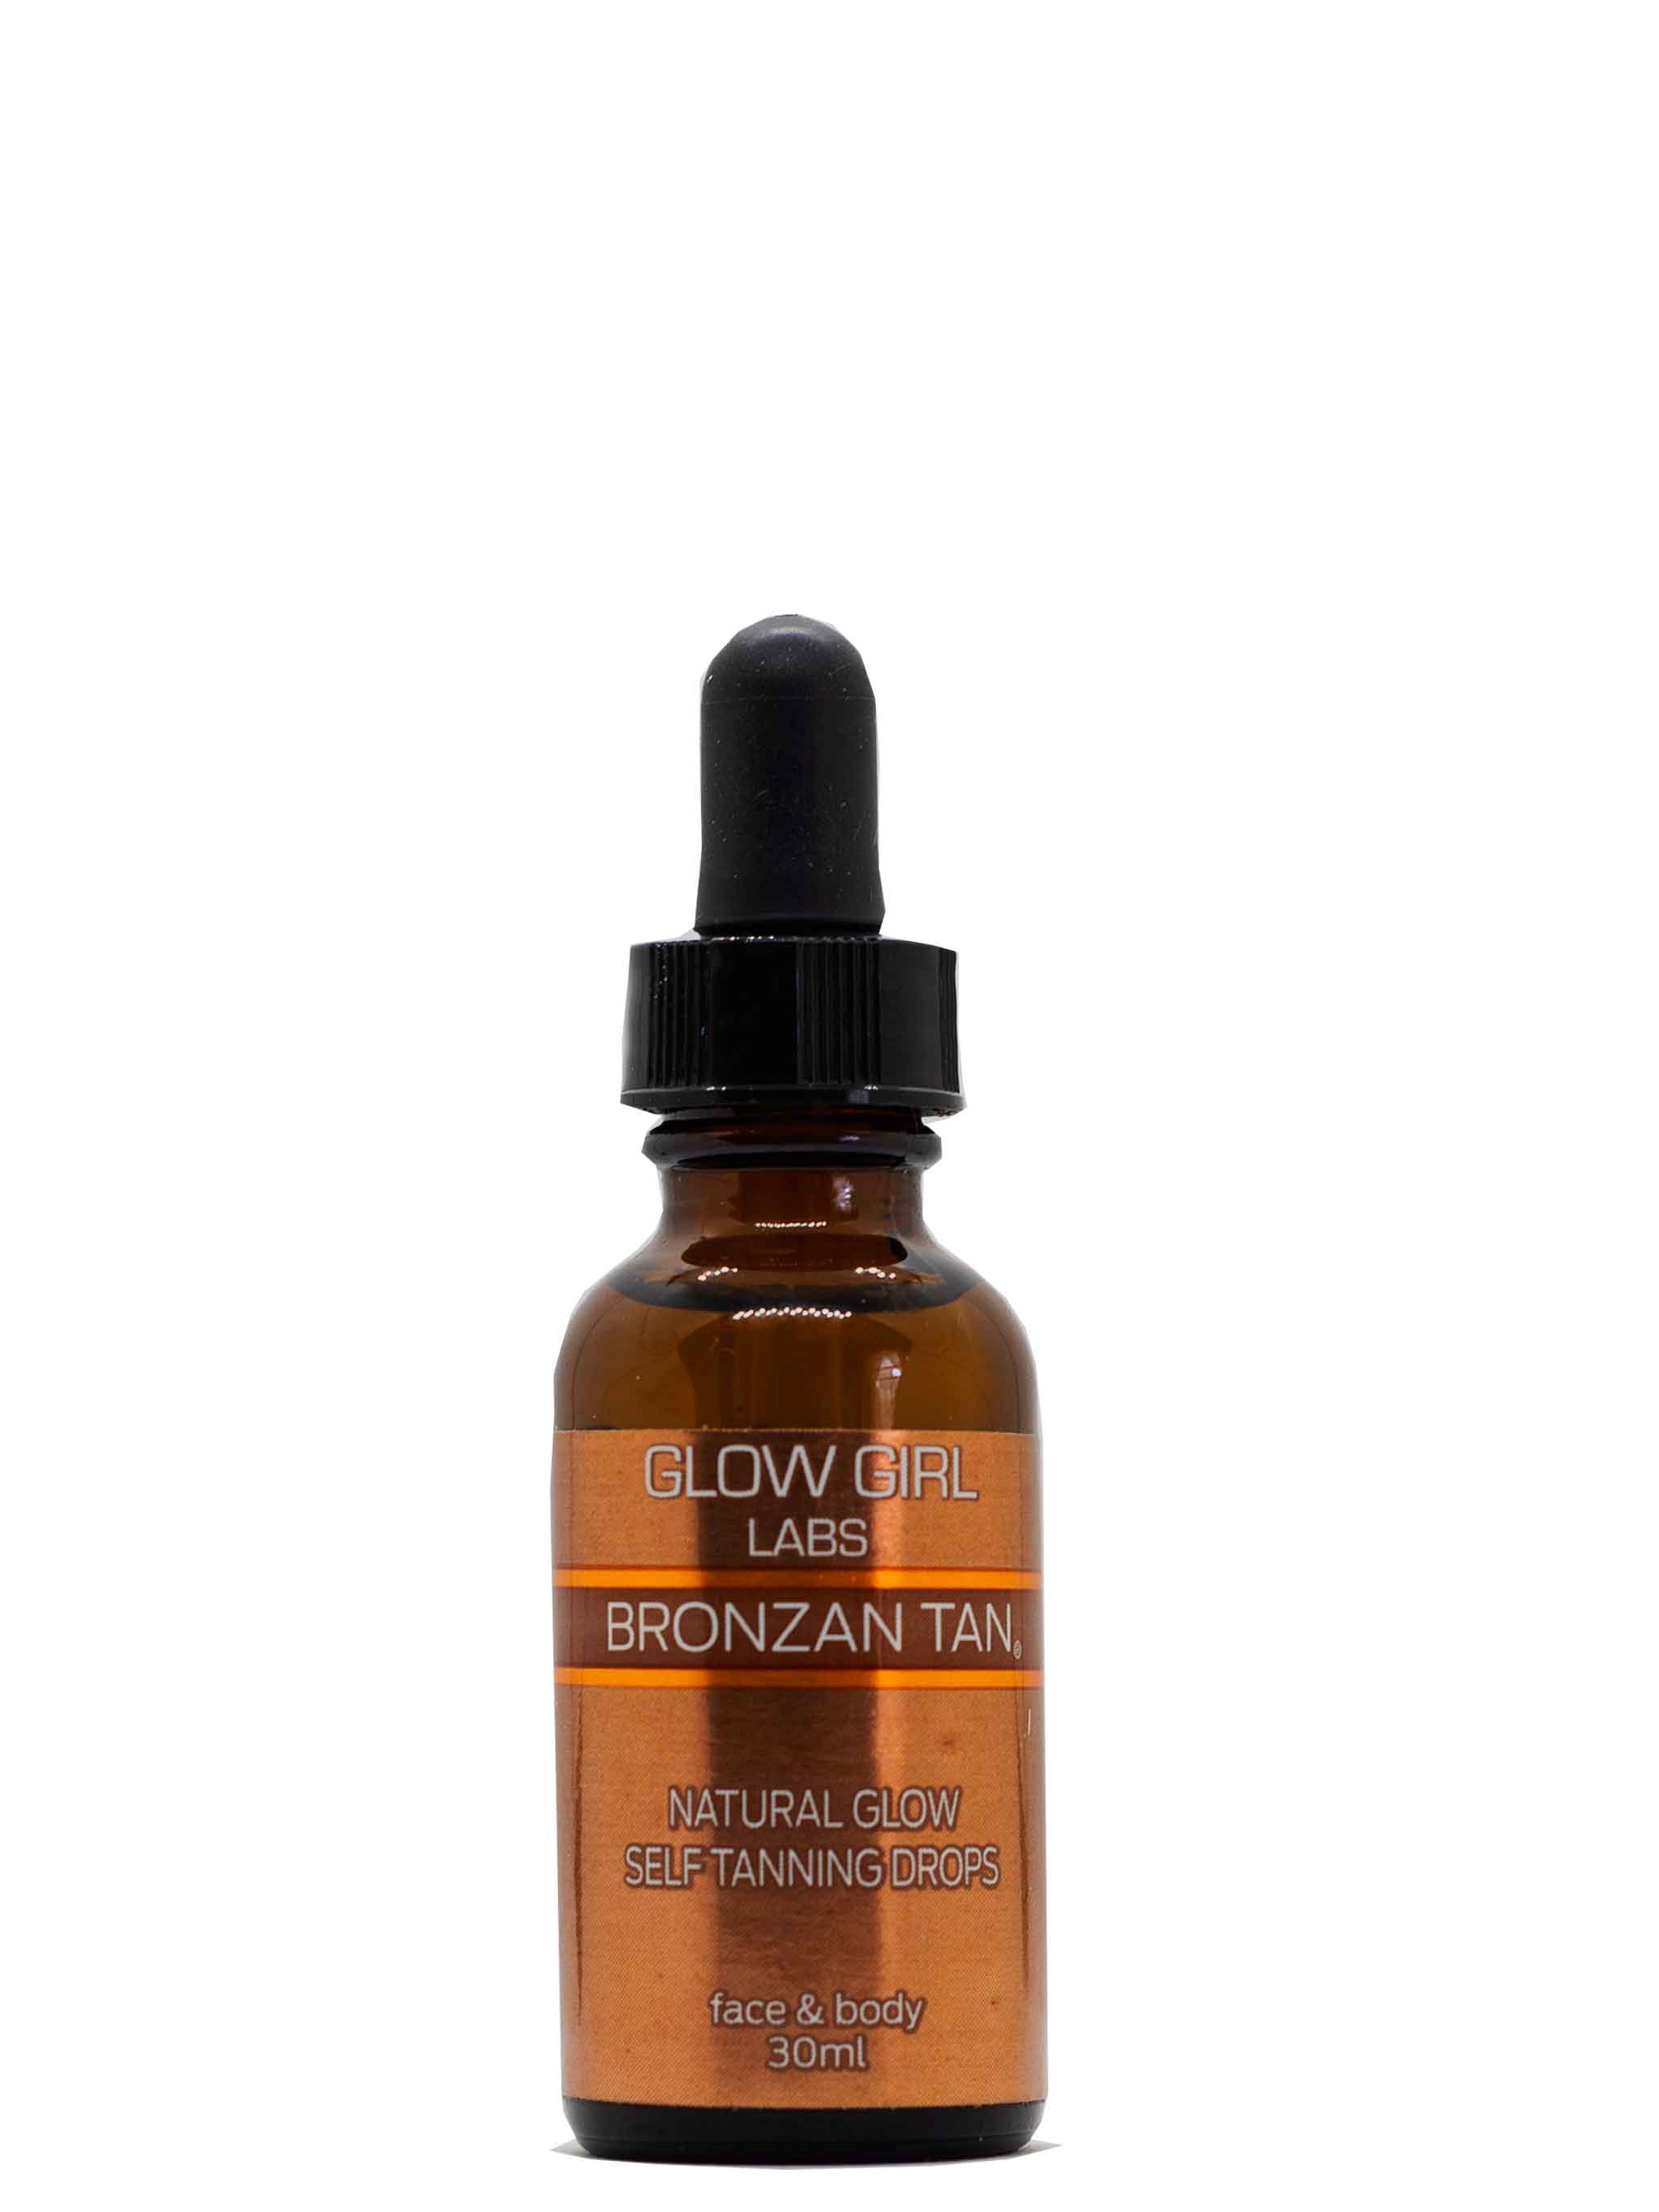 BRONZAN TAN NATURAL GLOW SELF TANNING DROPS - 30ML - BRONZAN TAN